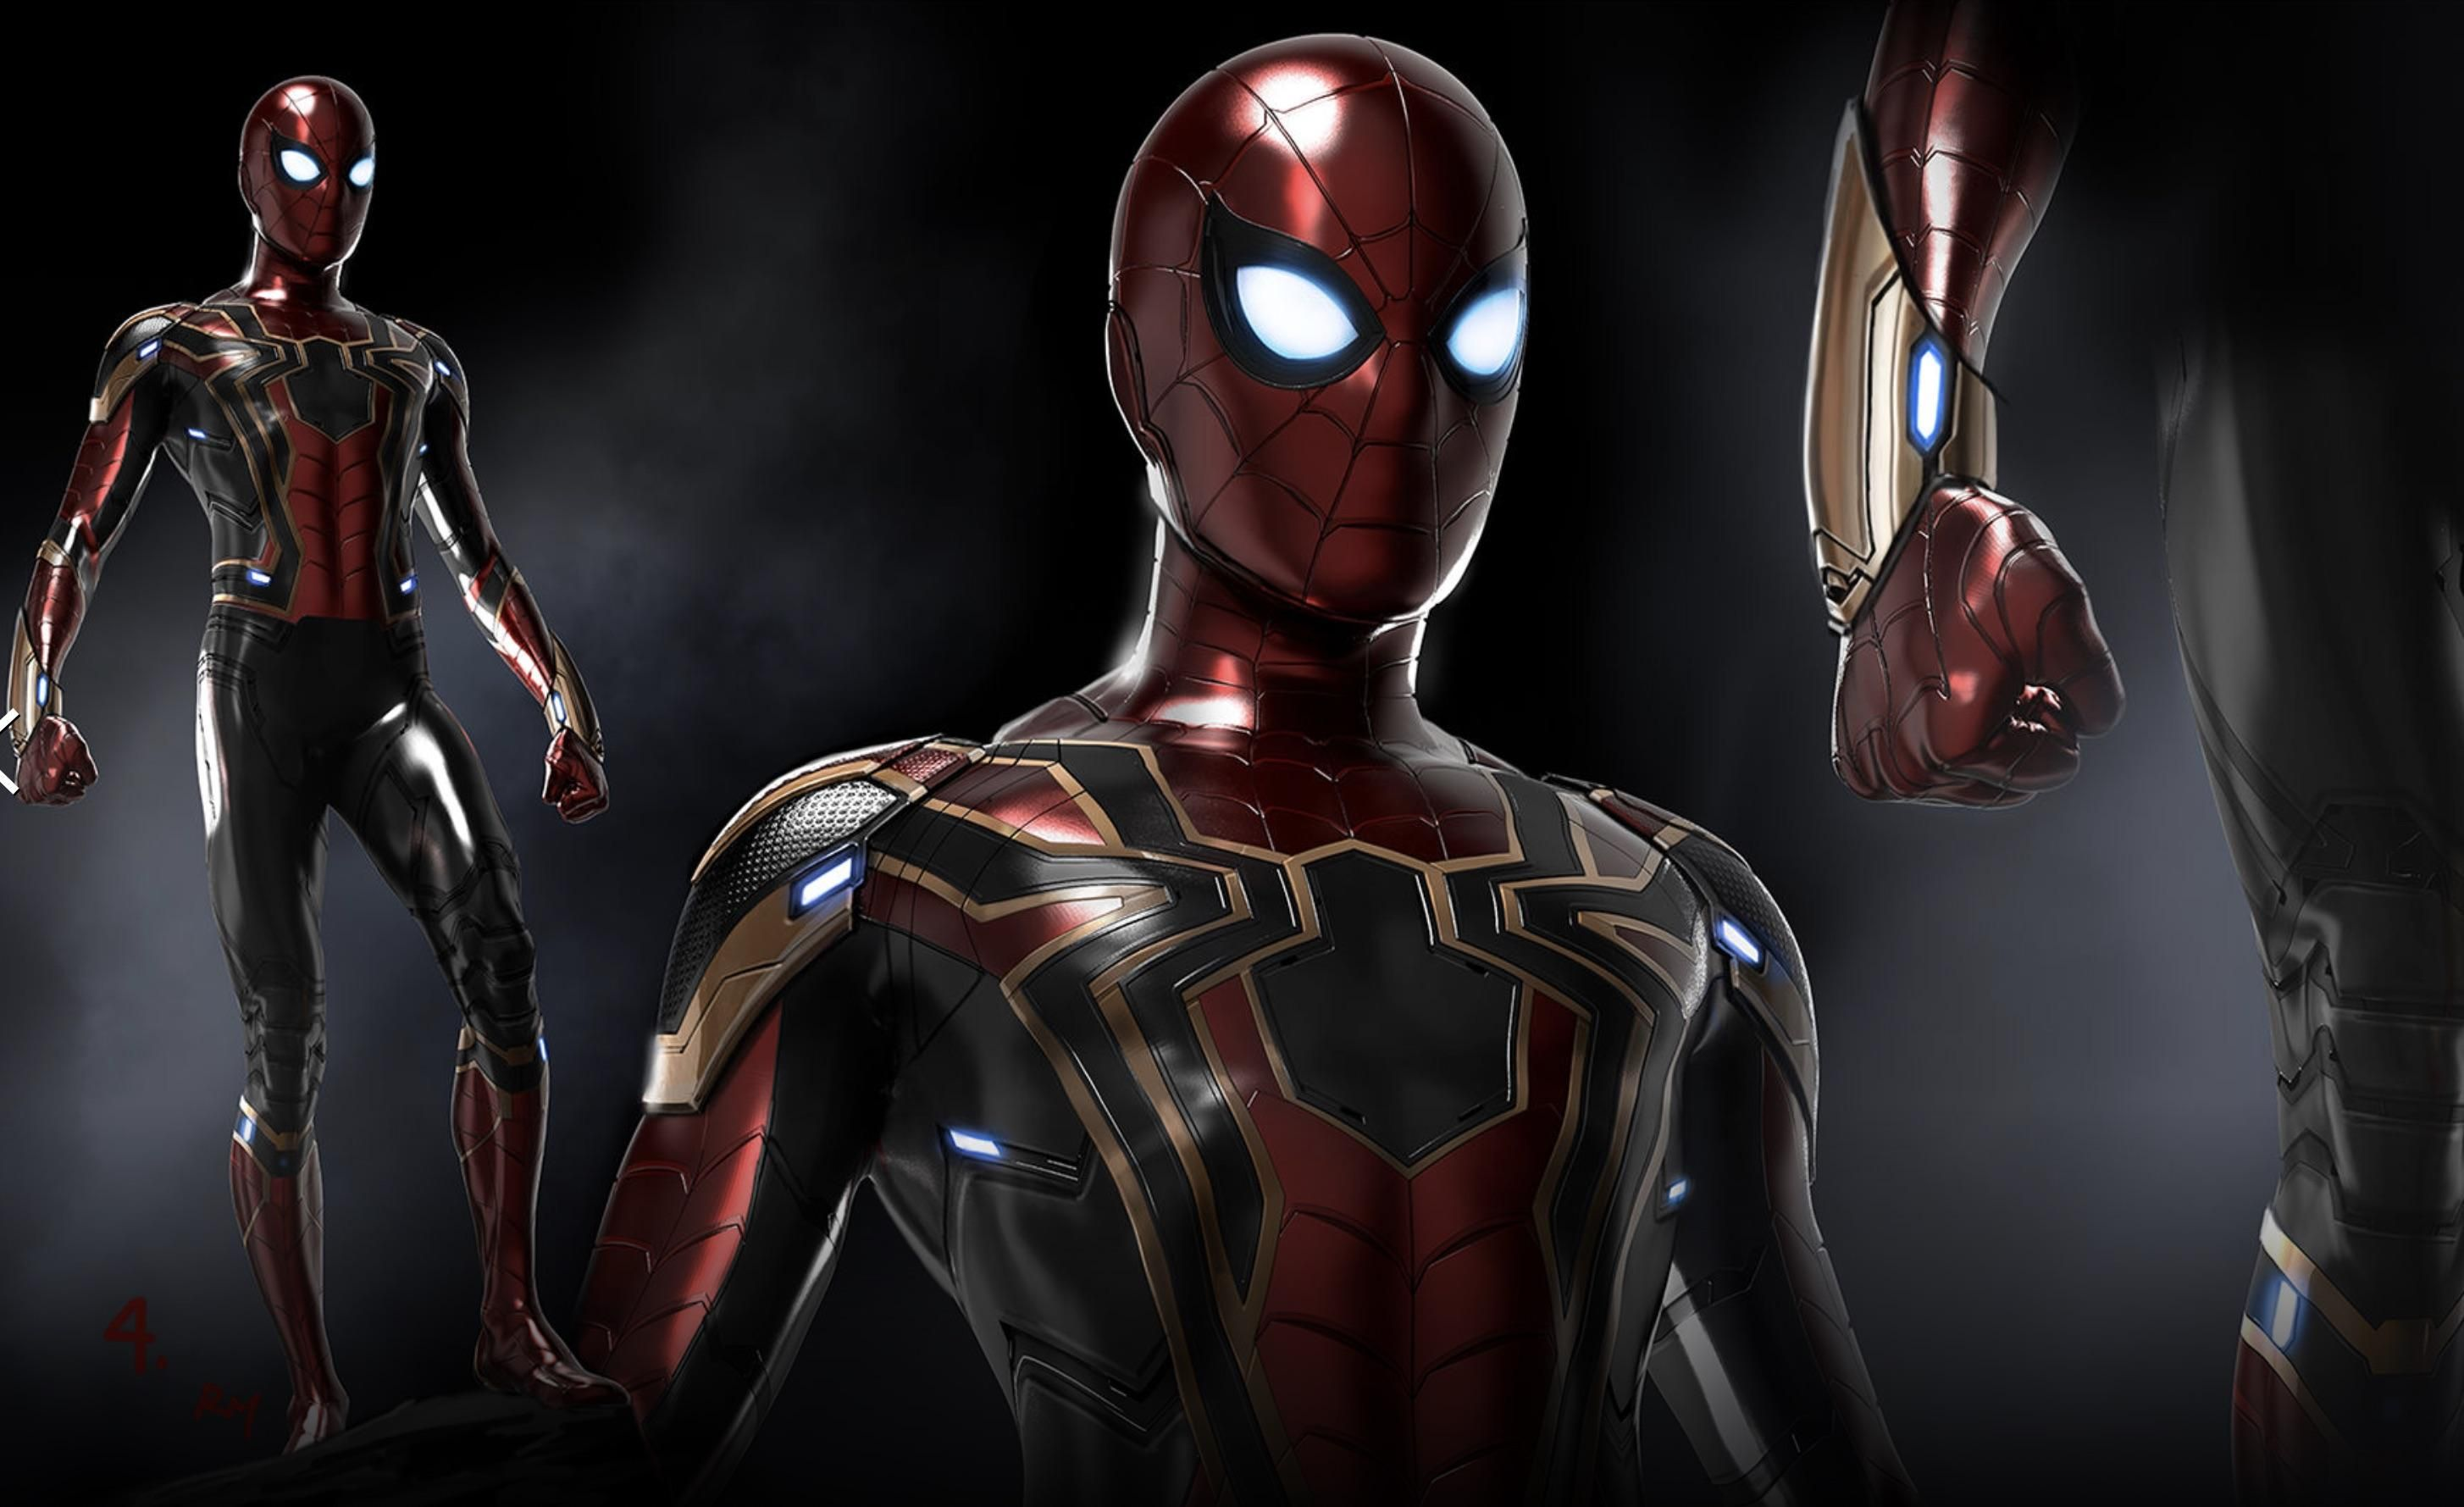 More Infinity War Concept Art Those Web Shooters Iron Spider